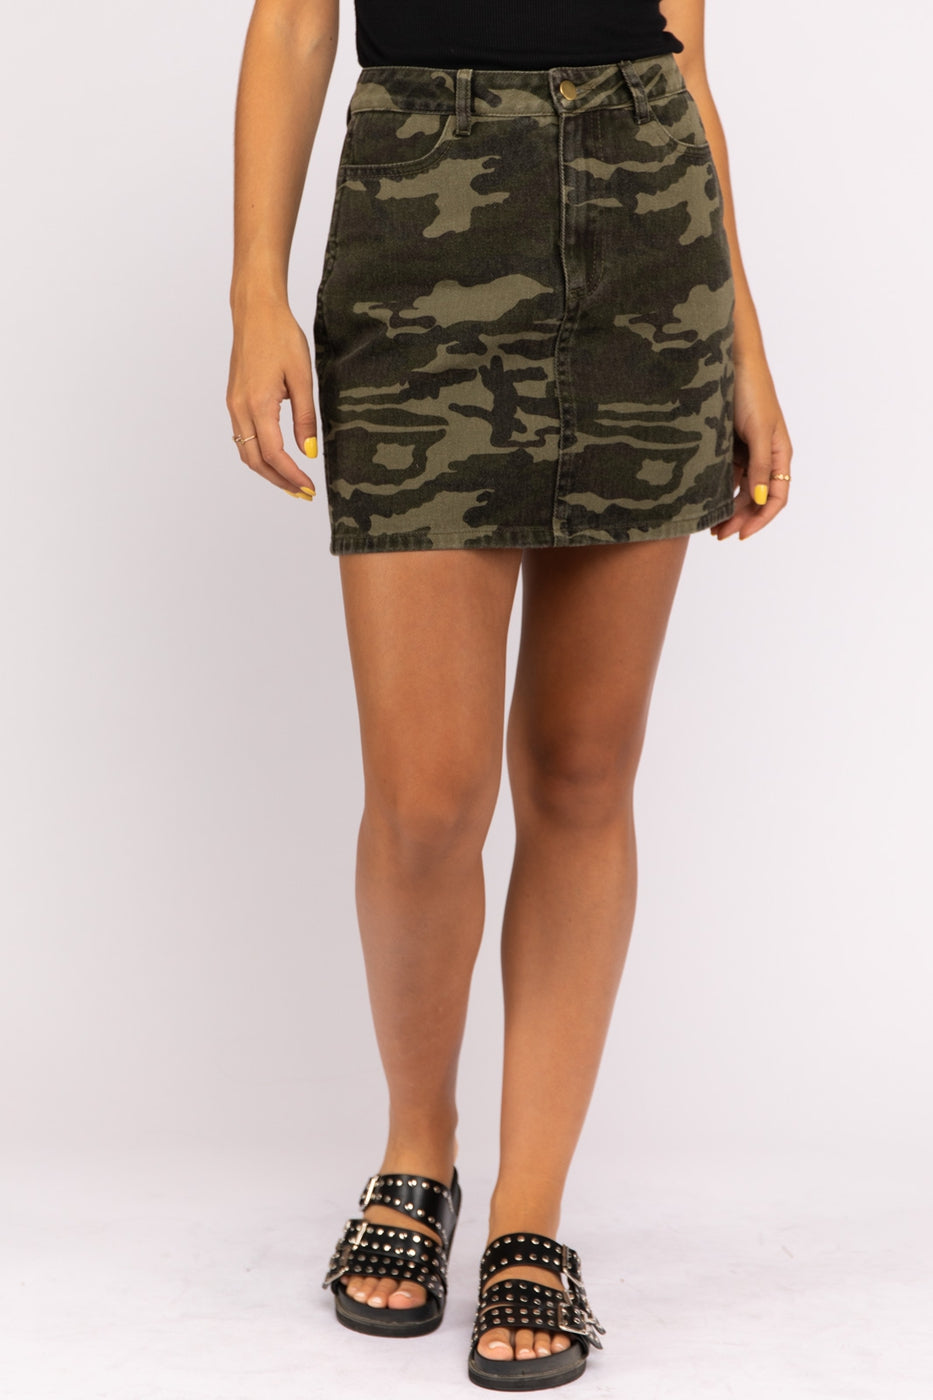 Camouflage Distressed Skirt Siin Bees